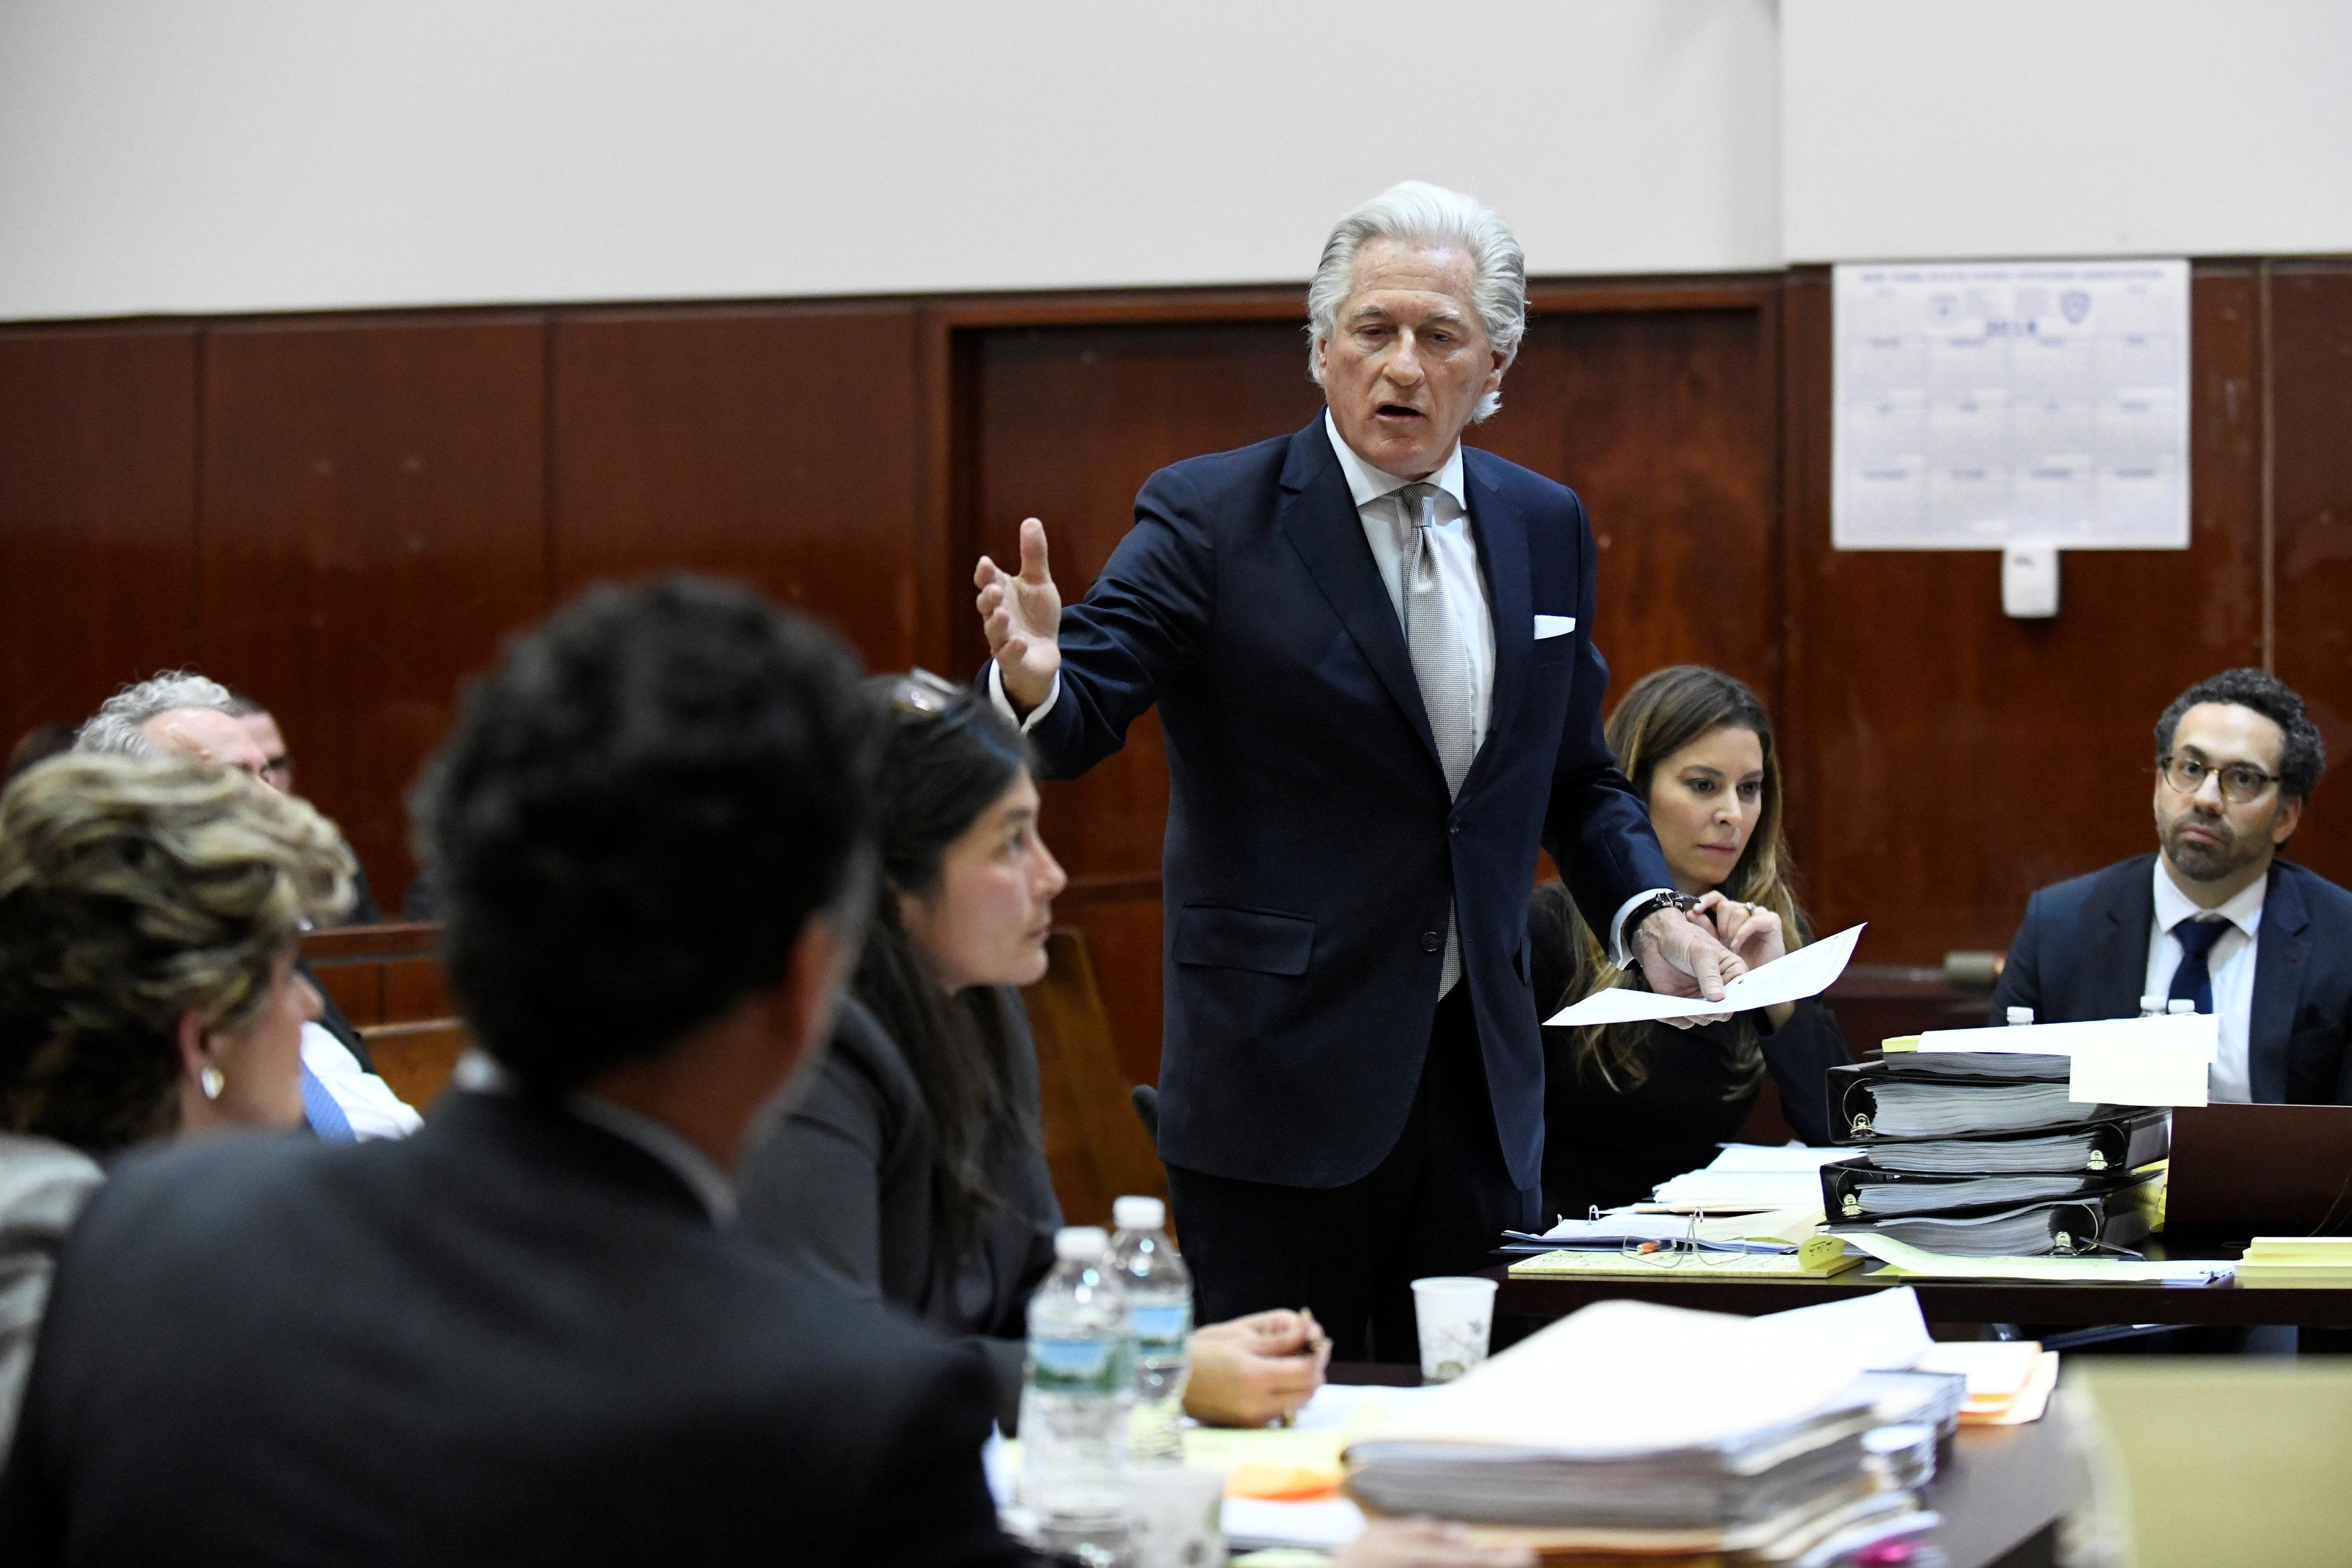 Lawyer for U.S. President Donald Trump, Marc Kasowitz, appears in court during a defamation hearing for Summer Zervos, a former contestant on The Apprentice, in New York State Supreme Court in Manhattan, New York, U.S., December 5, 2017. Barry Williams/Pool